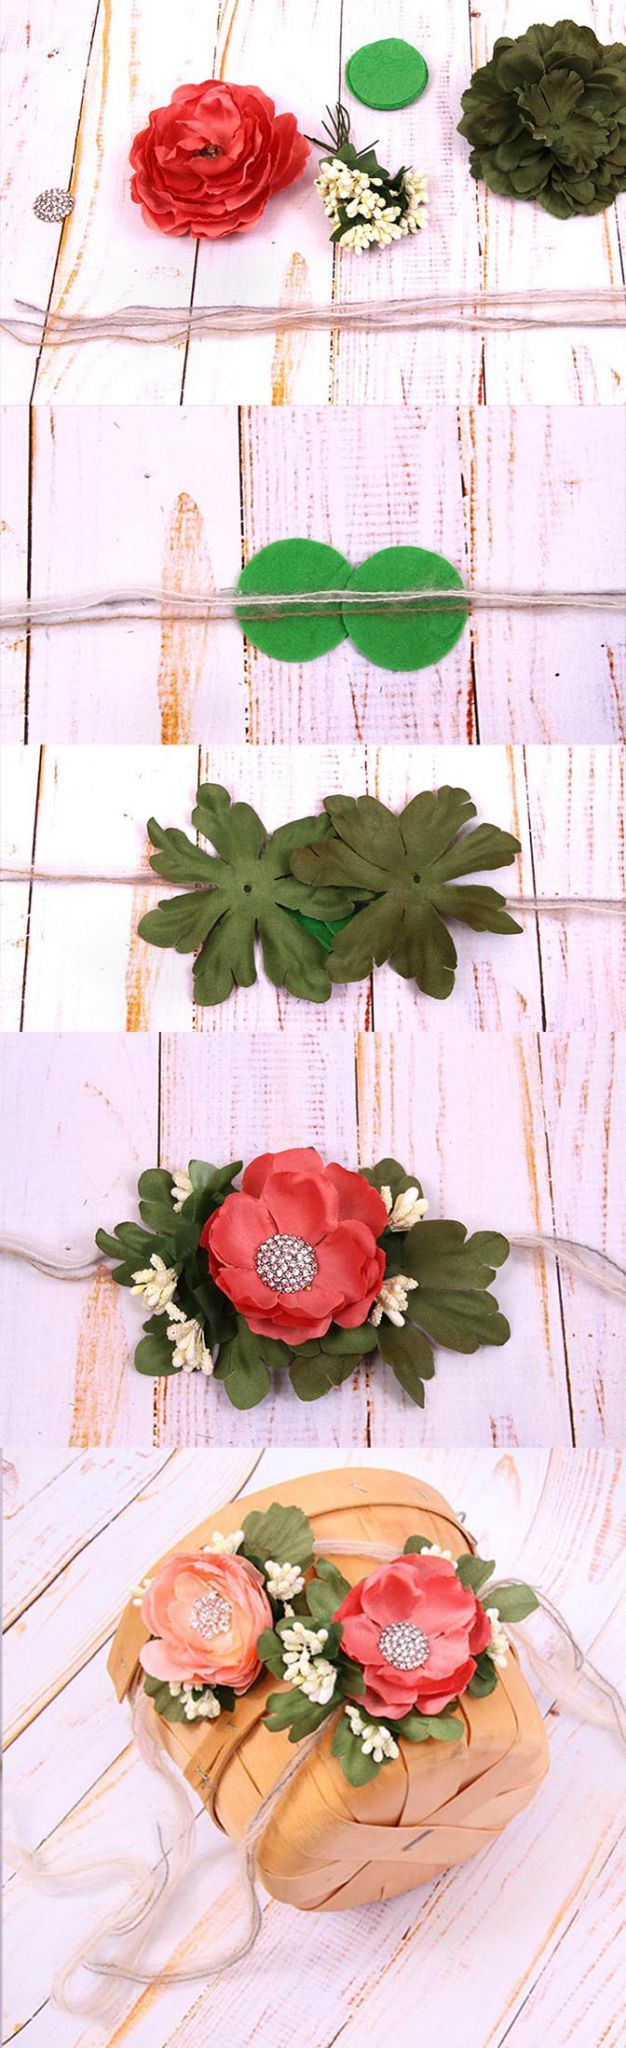 Baby Flower Headbands! DIY baby headband ideas - Learn how to make a beautiful and ethereal flower headband- perfect for newborn or baby photos.